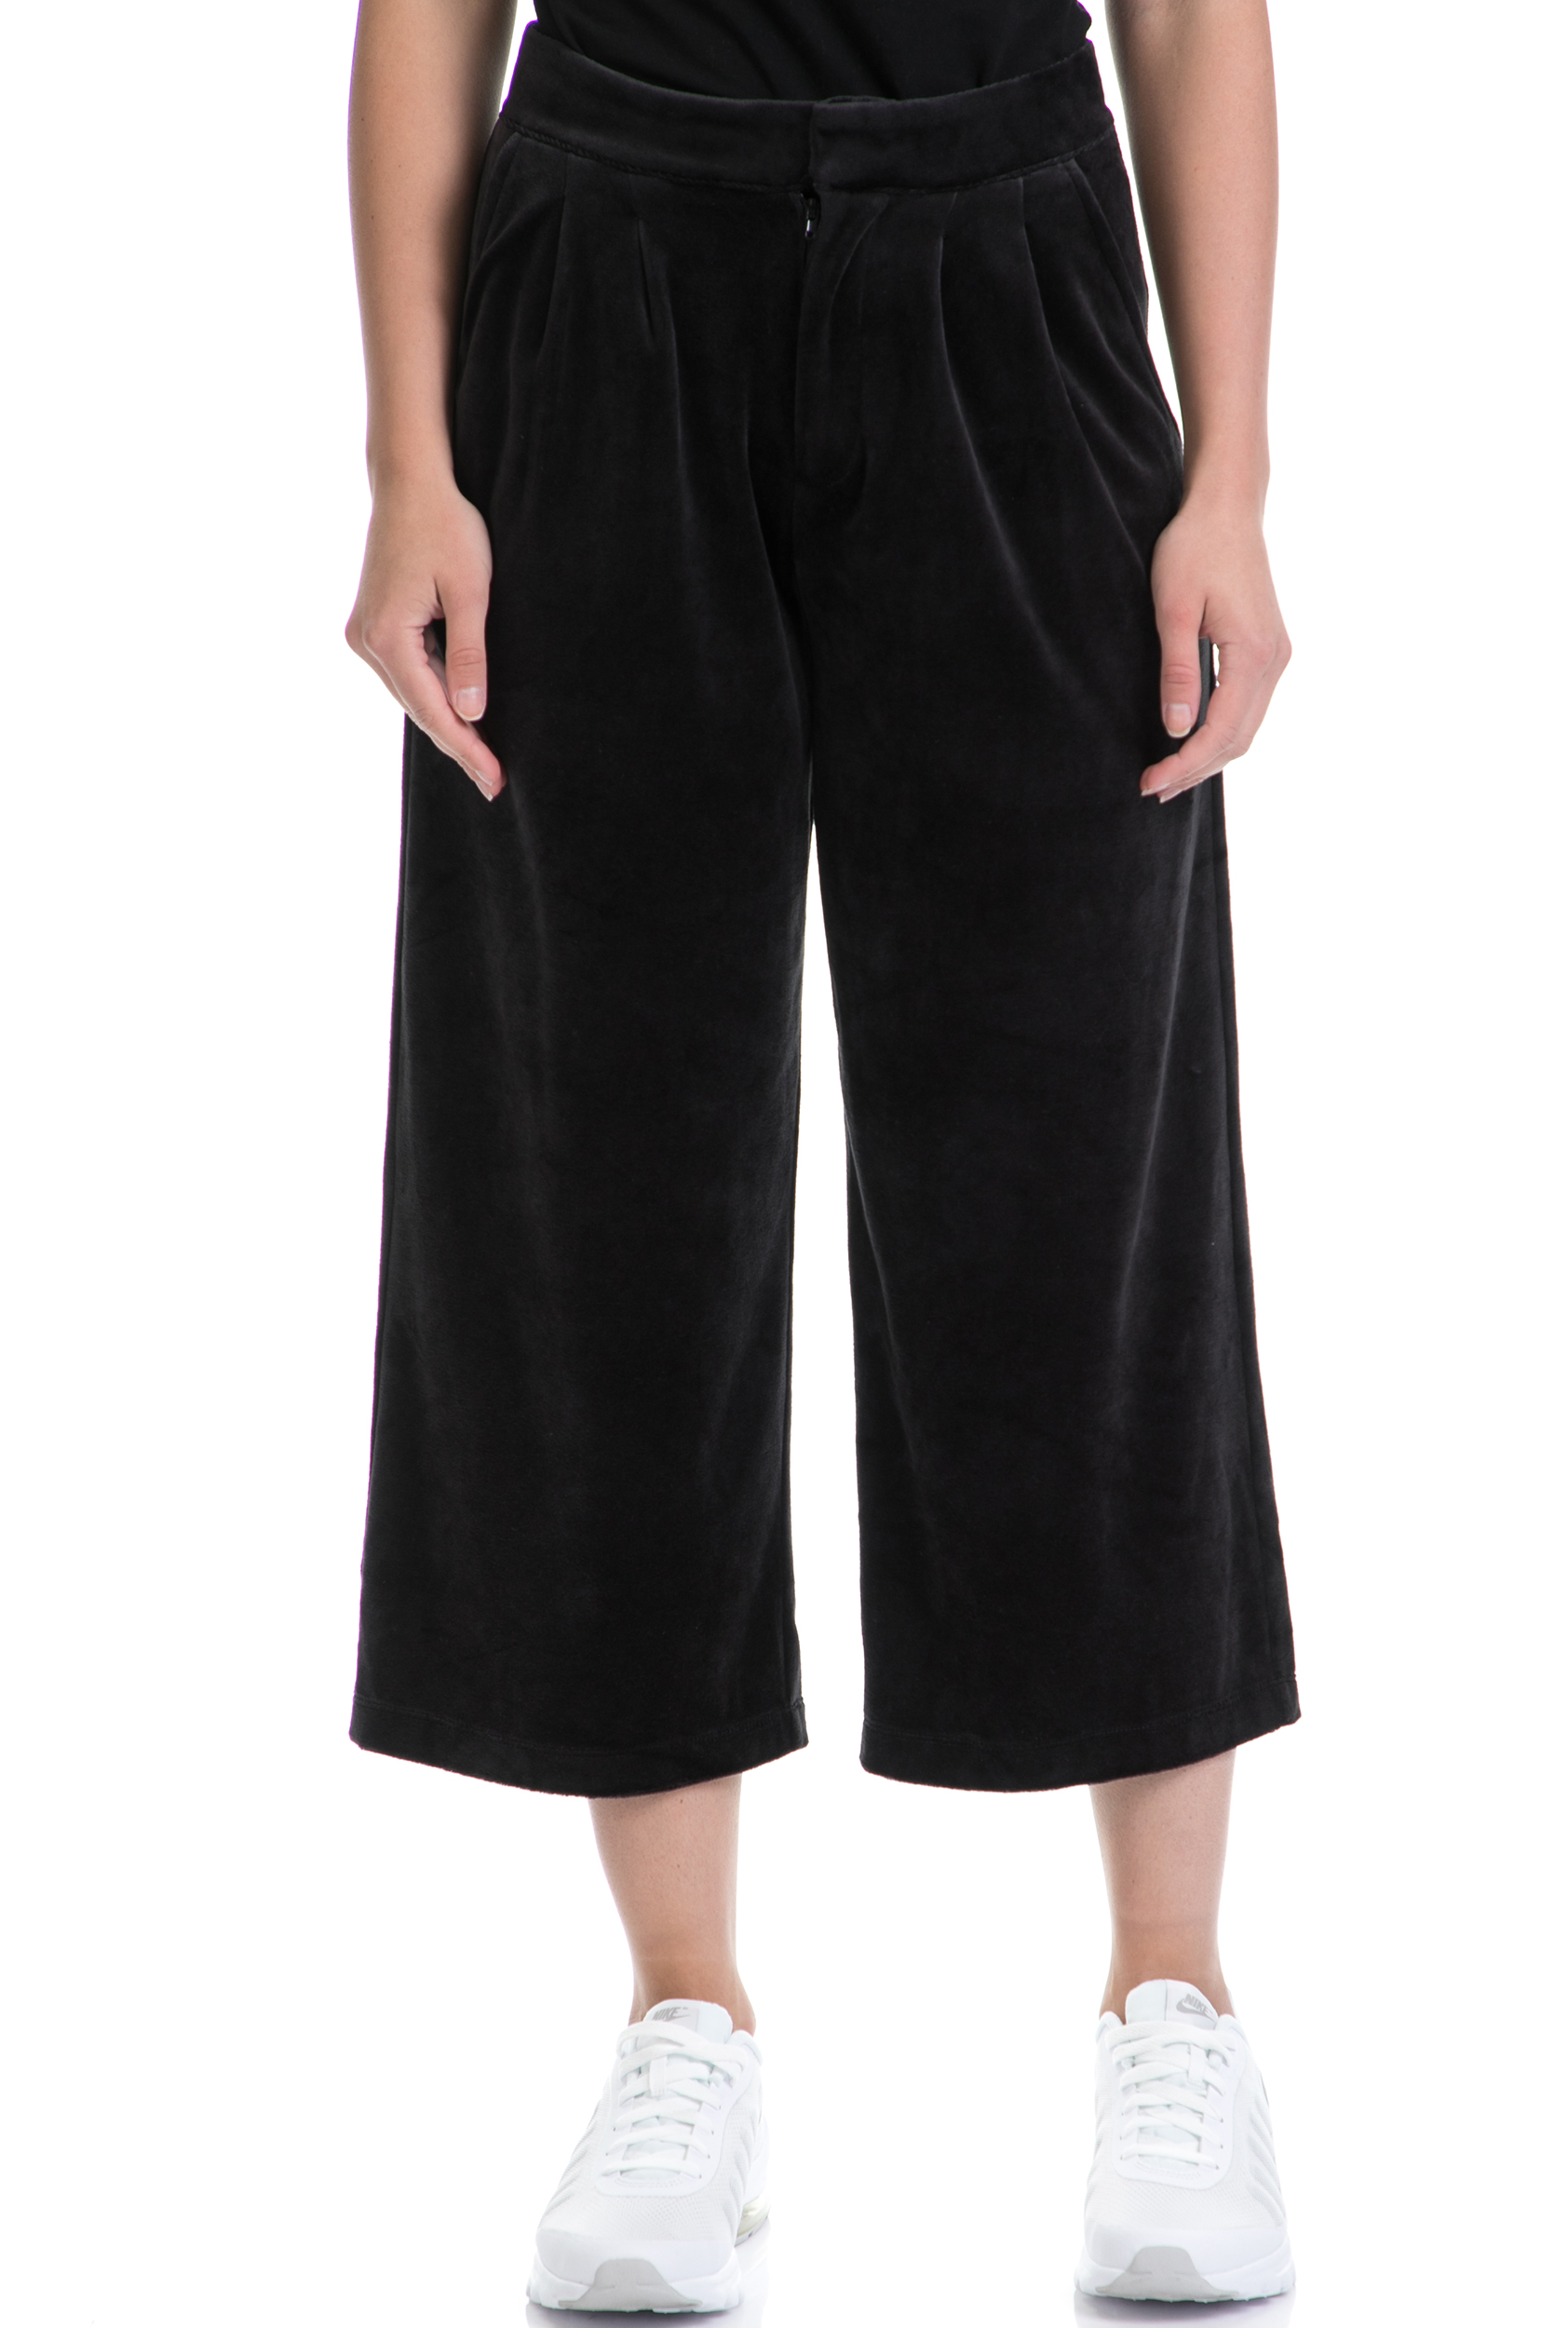 db4010dfe190 CollectiveOnline JUICY COUTURE - Γυναικείο παντελόνι φορμα VELOUR CROPPED  JUICY COUTURE μαύρο